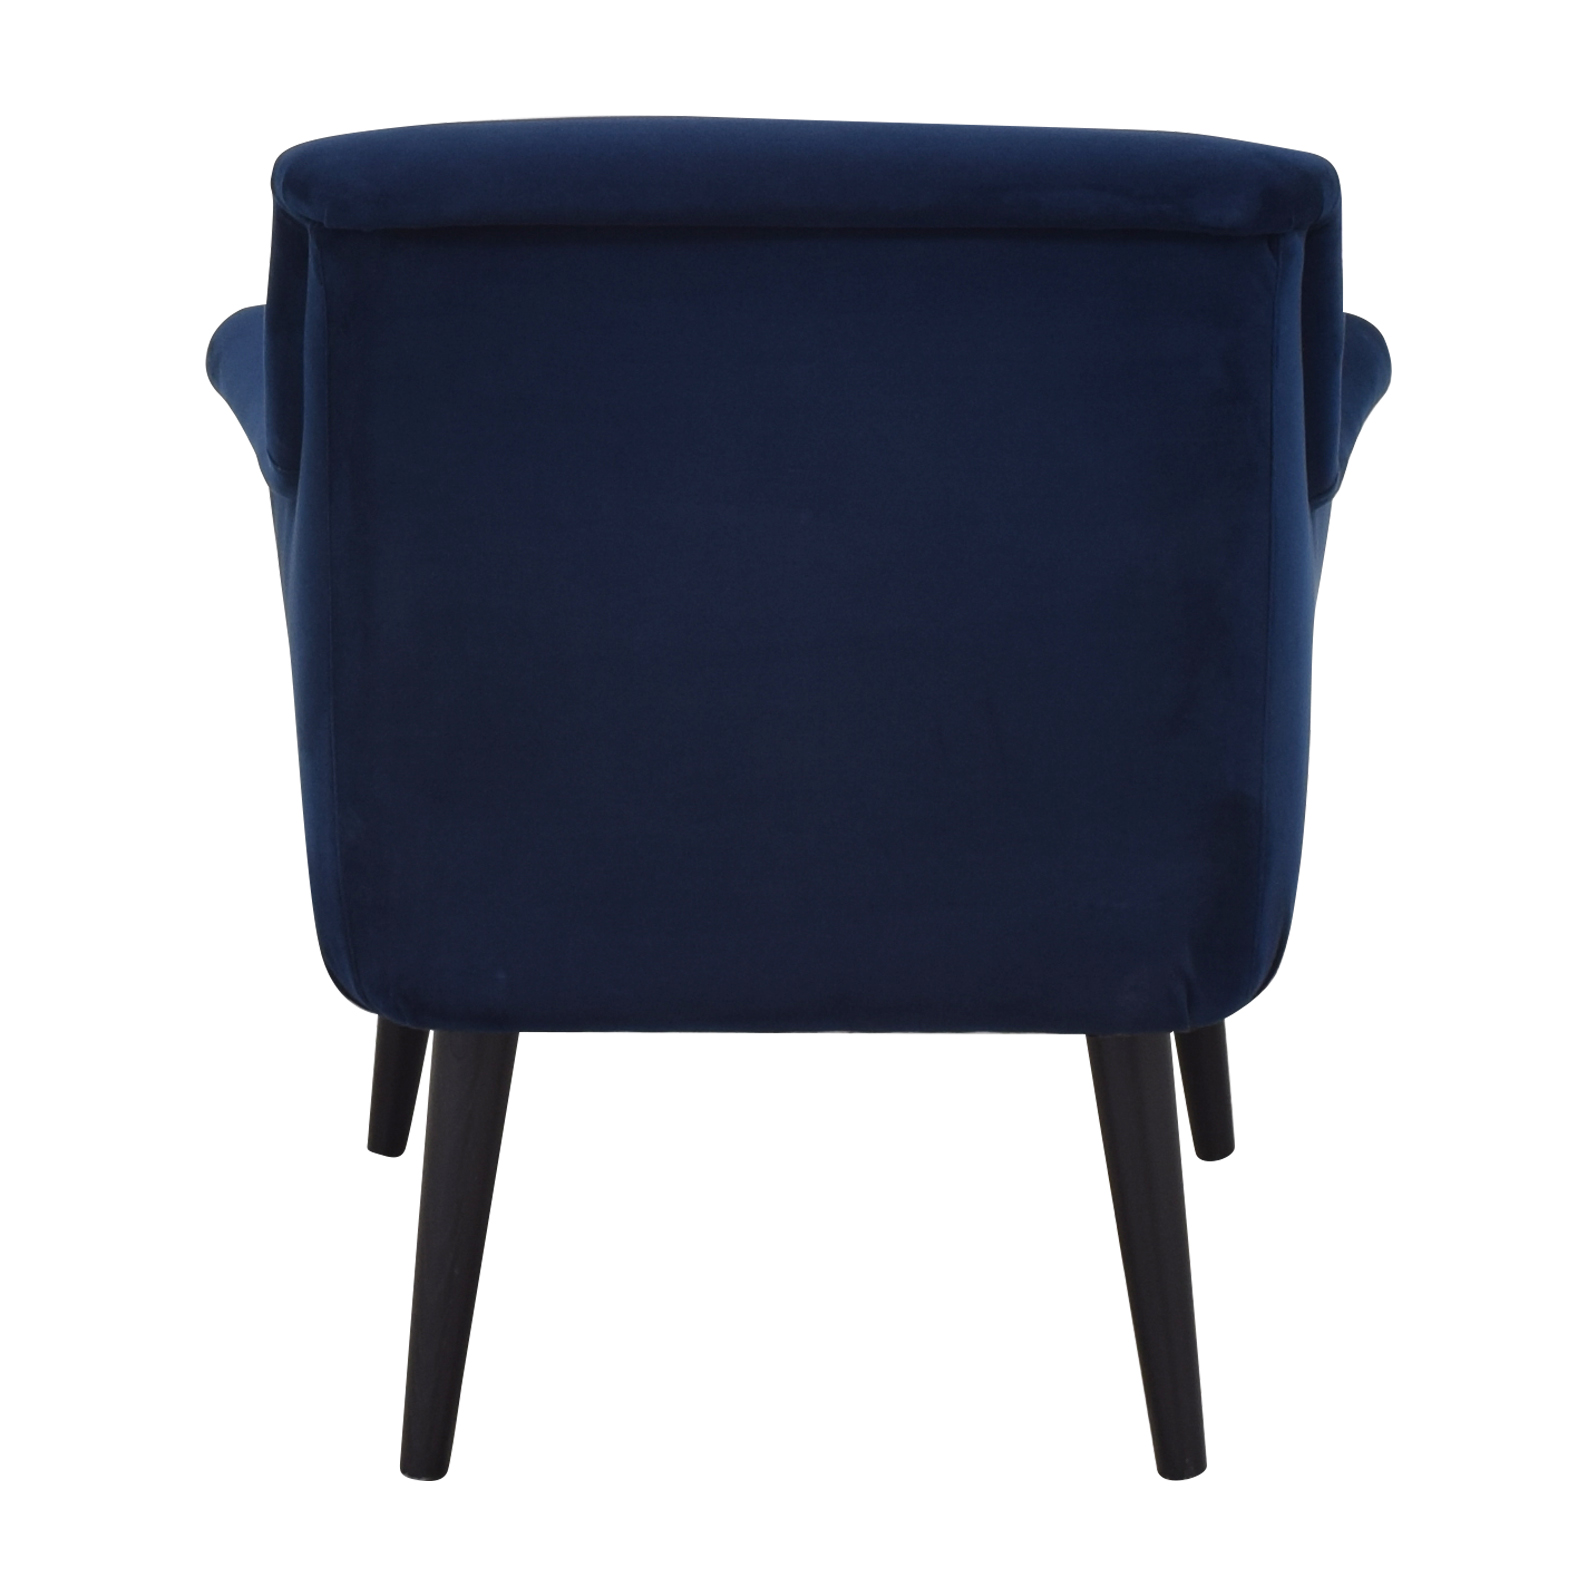 The Inside Cocktail Chair / Chairs